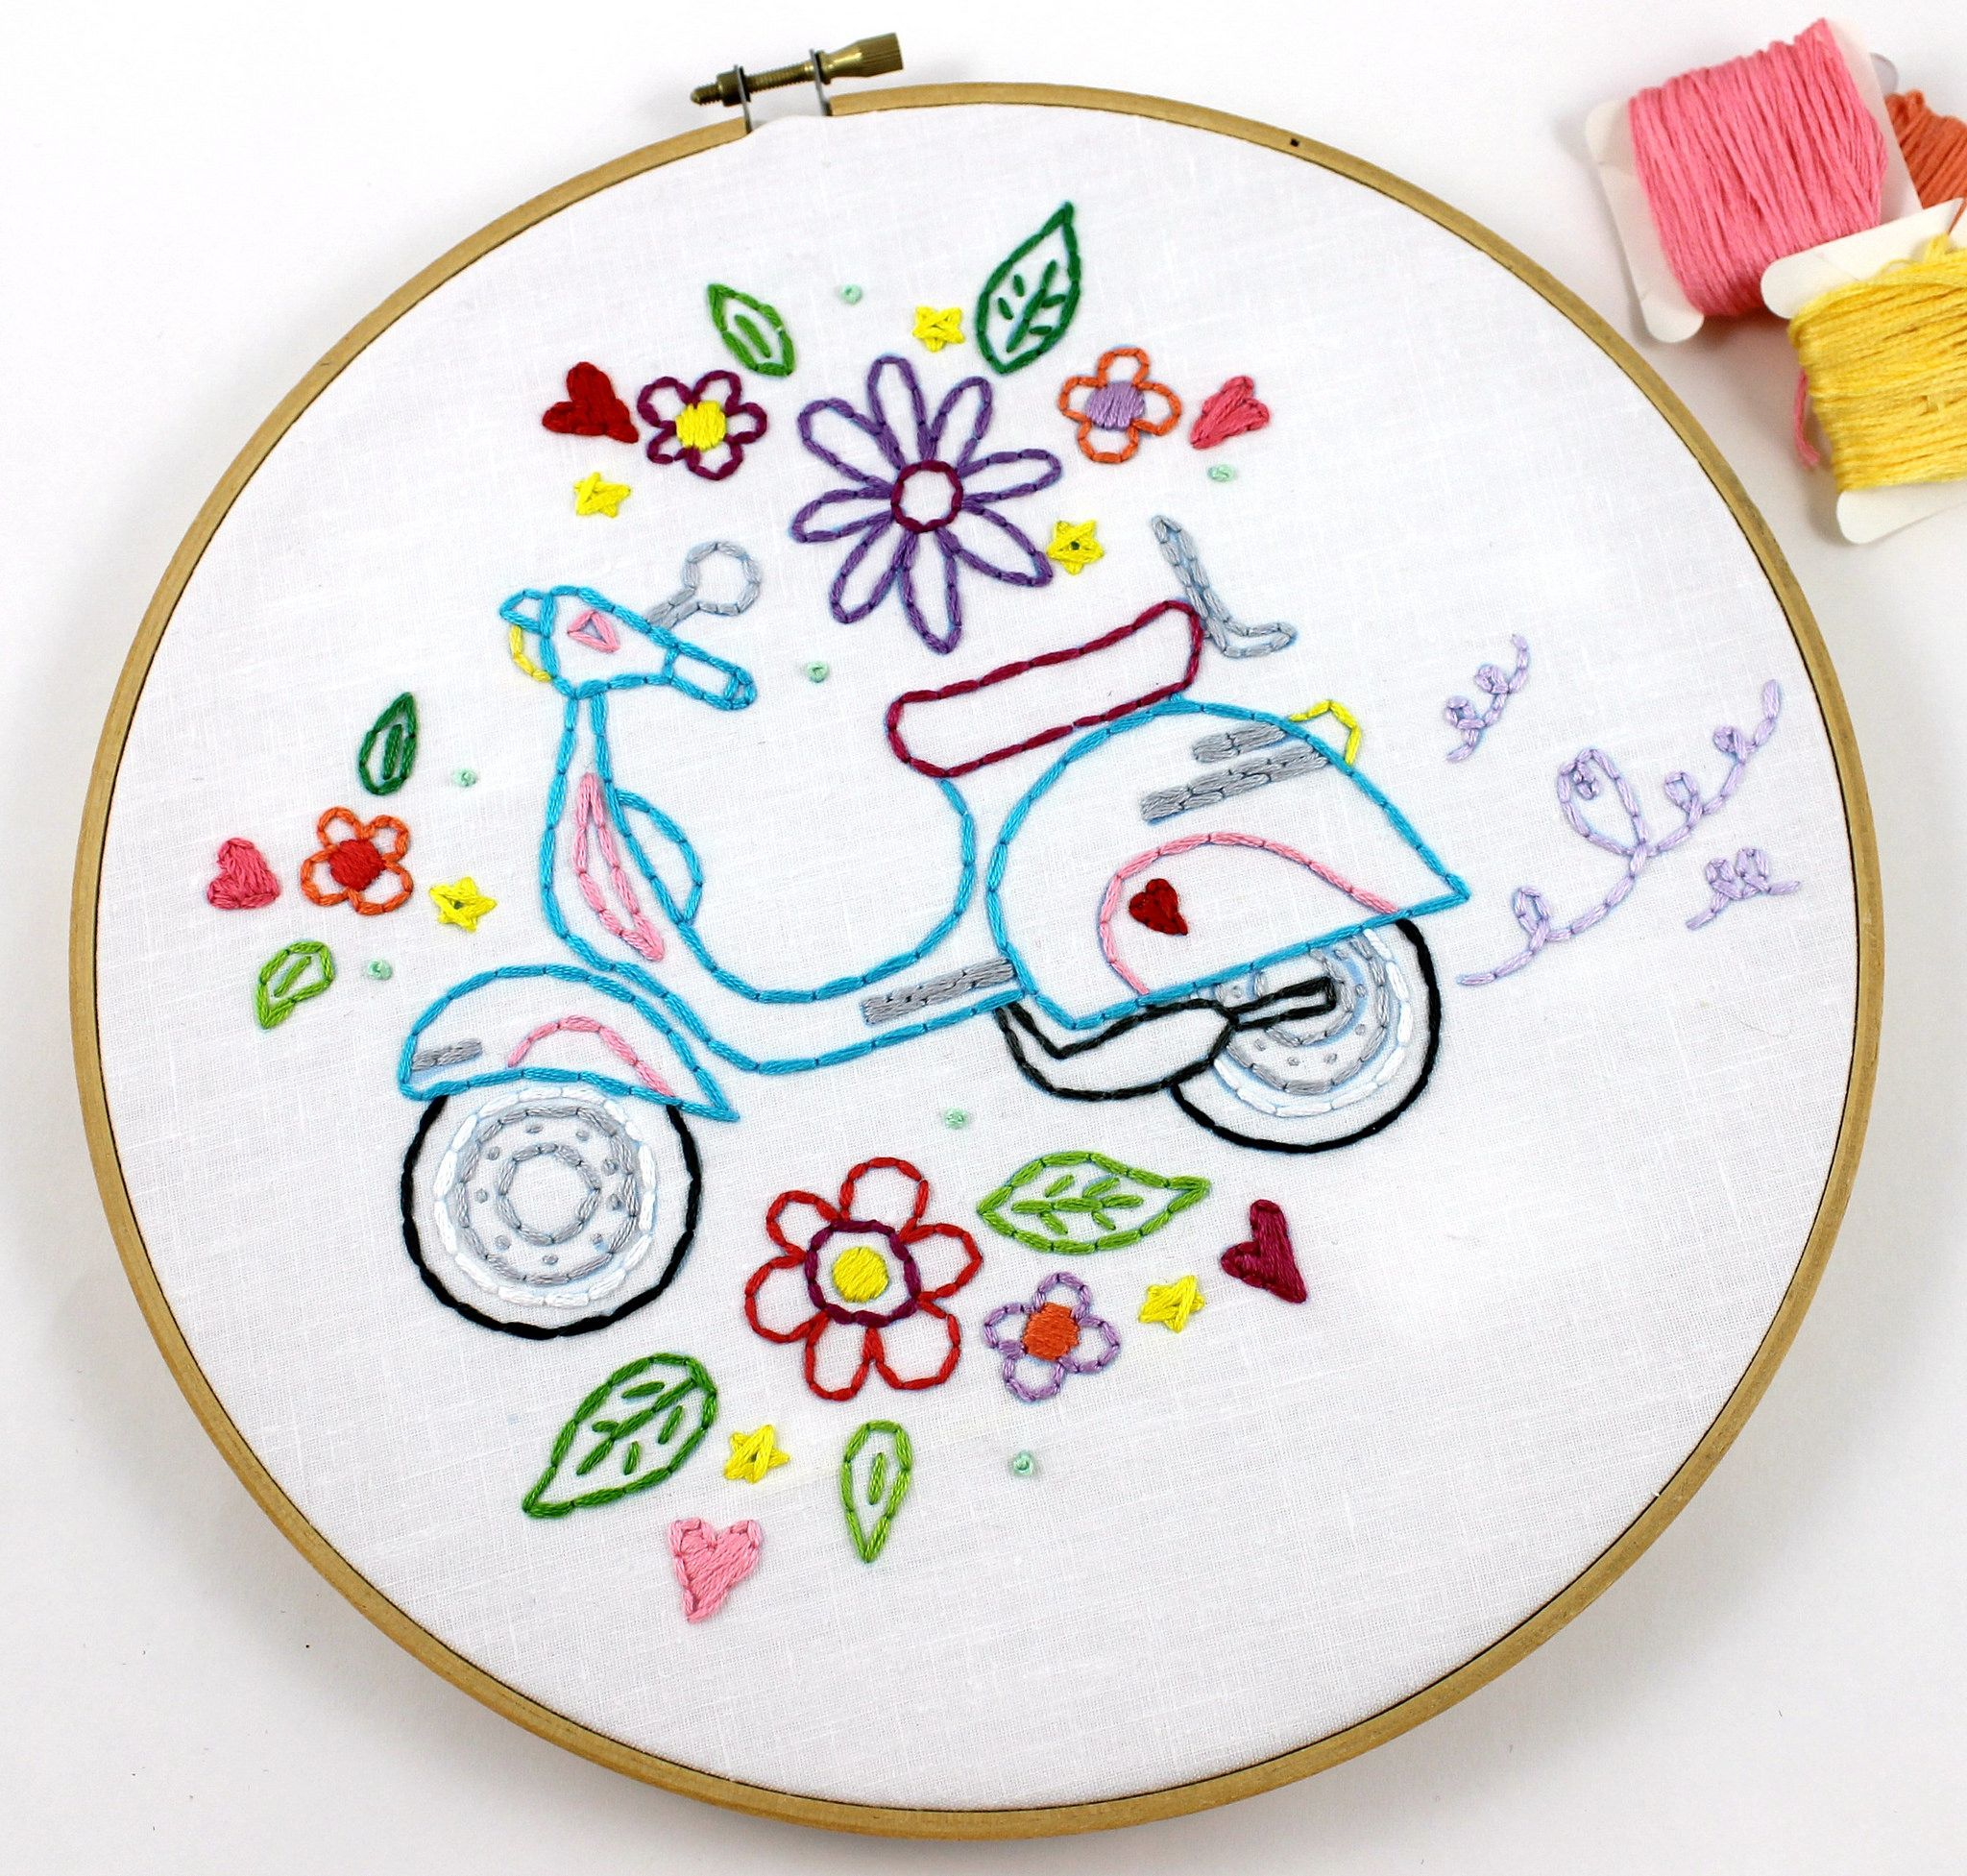 Retro Scooter Embroidery Pattern | embroidery | Pinterest | Bordado ...